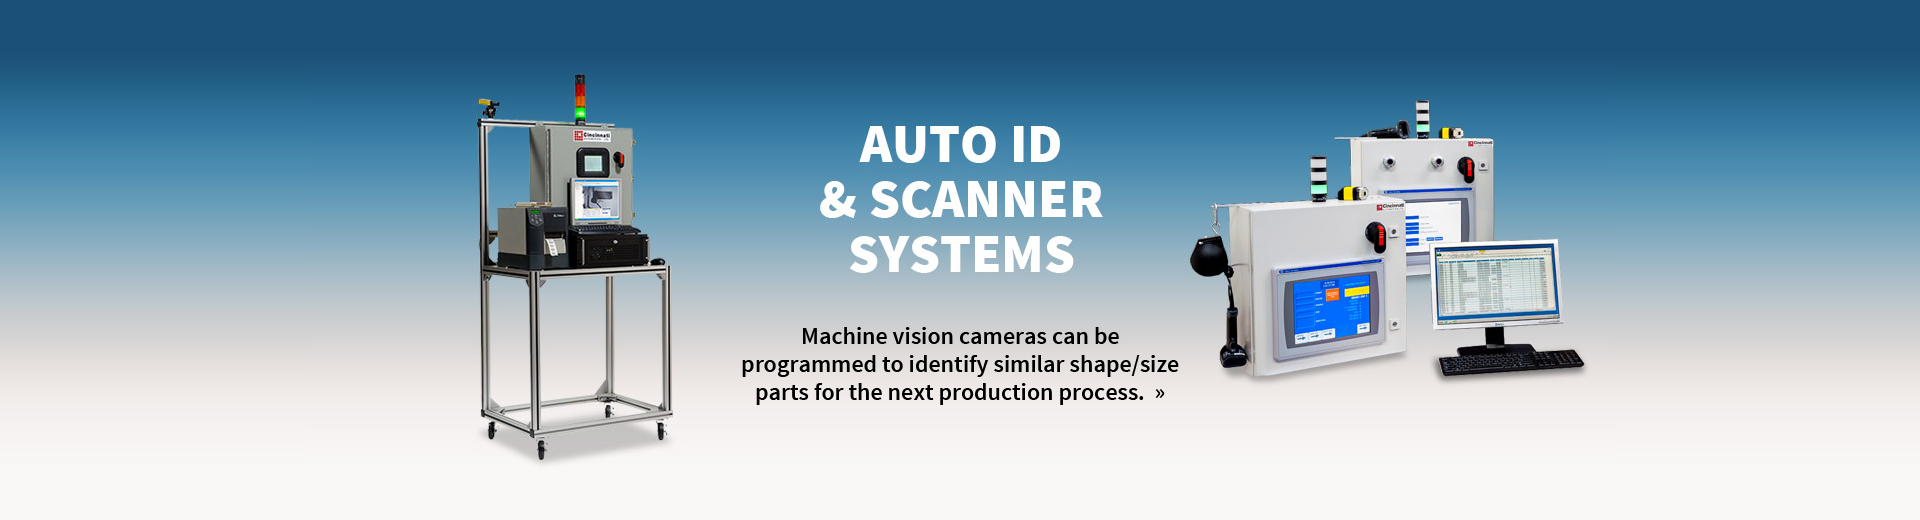 Auto ID & Scanner Systems